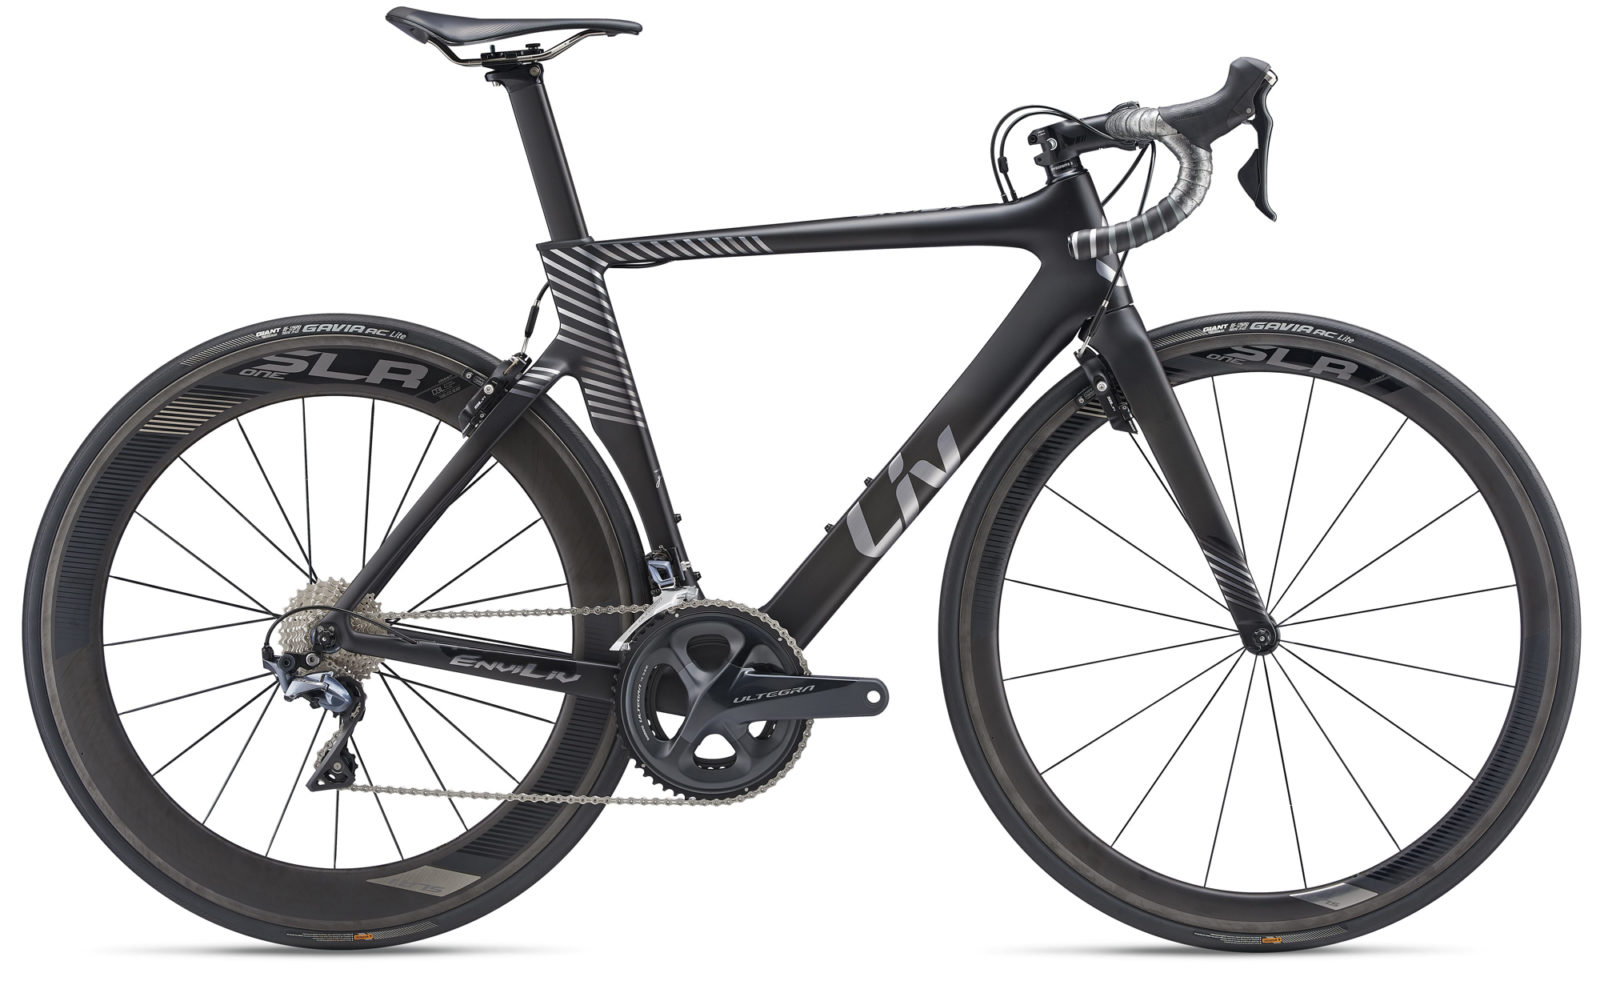 LIV Rennrad Enviliv Advanced Pro 2019